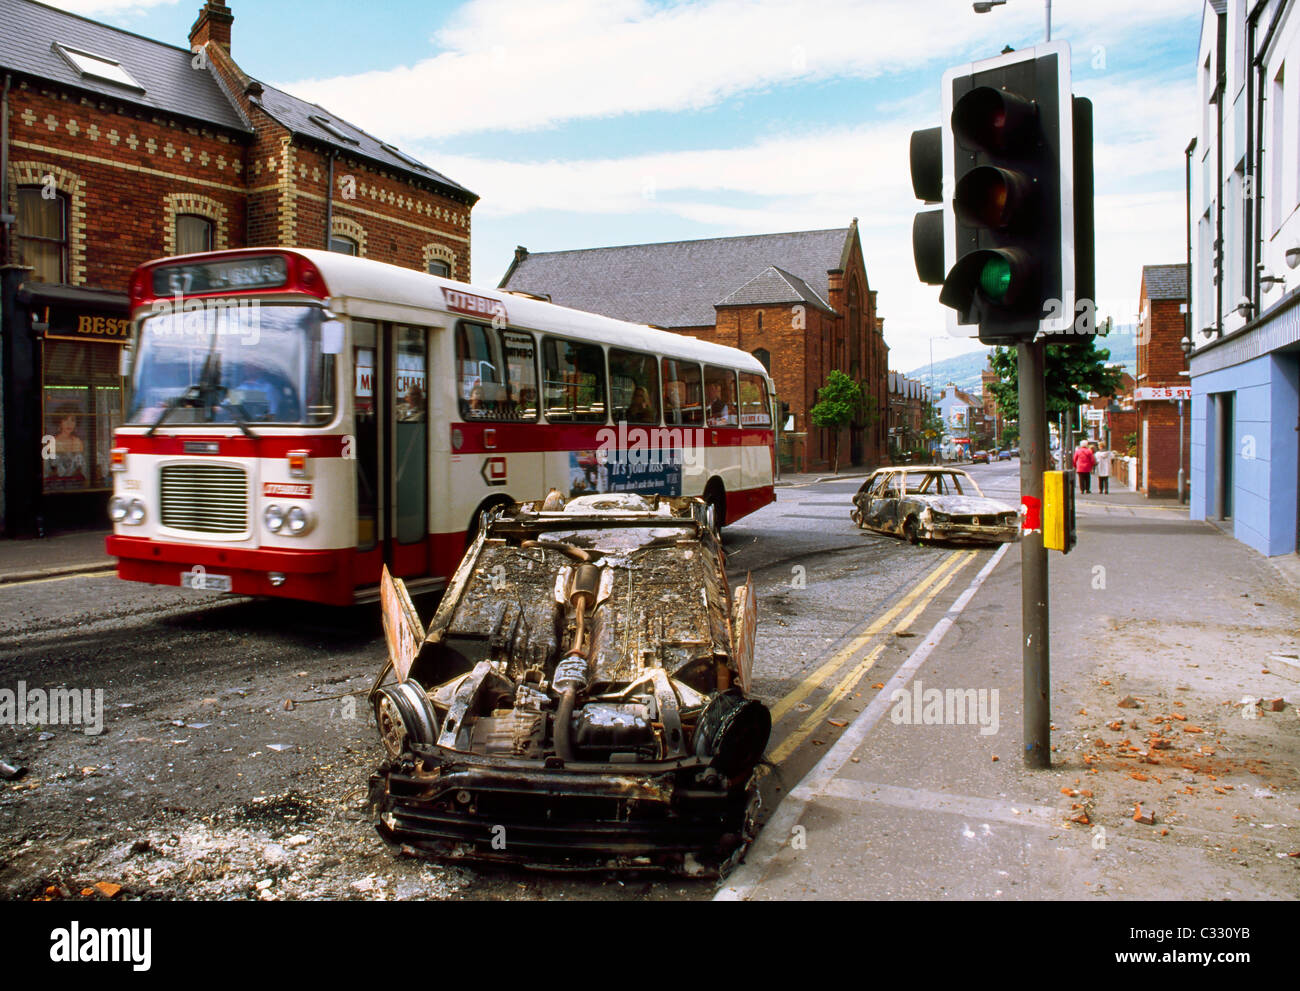 Belfast, County Antrim, Northern Ireland, Donegall Rd, Burnt Out Car, Northern Ireland Troubles - Stock Image